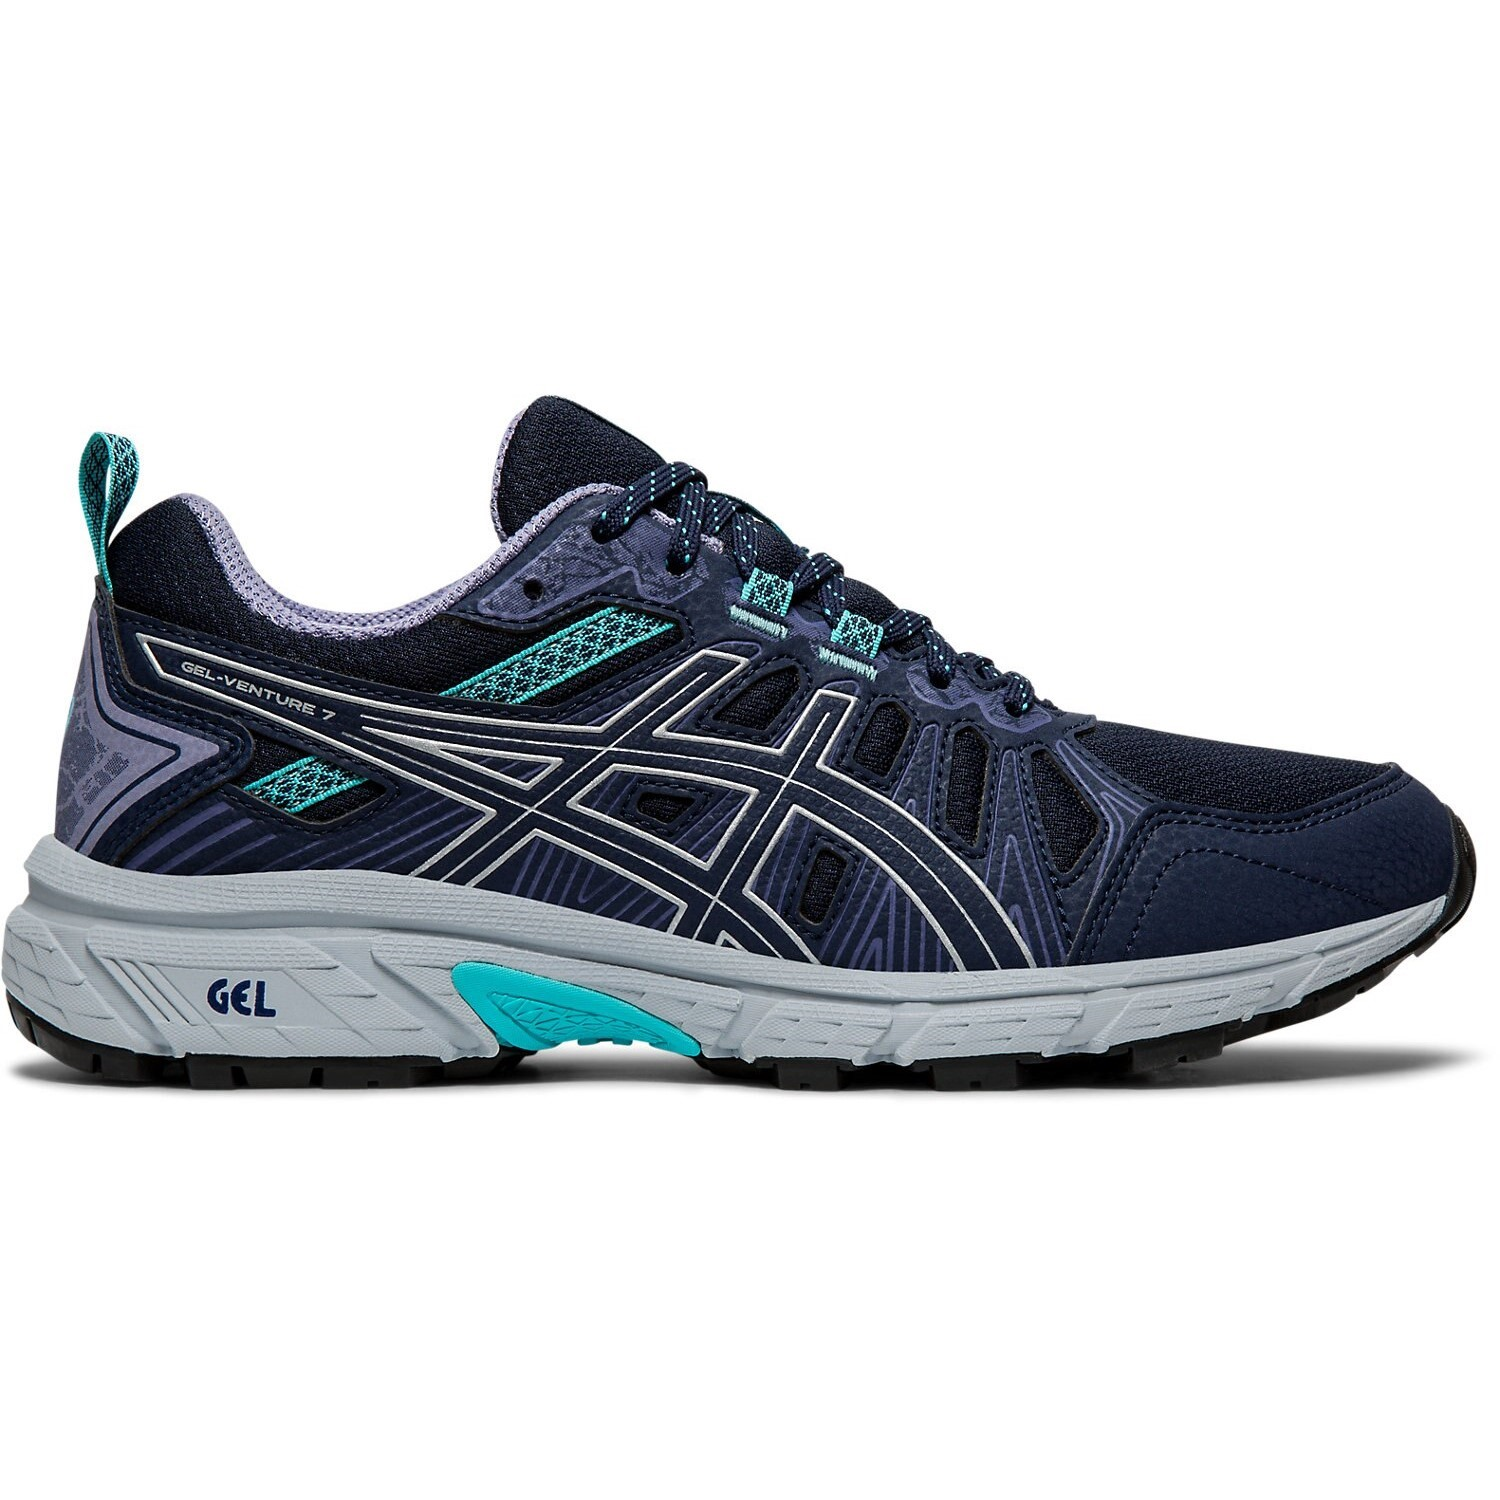 Asics Gel Venture 7 Womens Trail Running Shoes